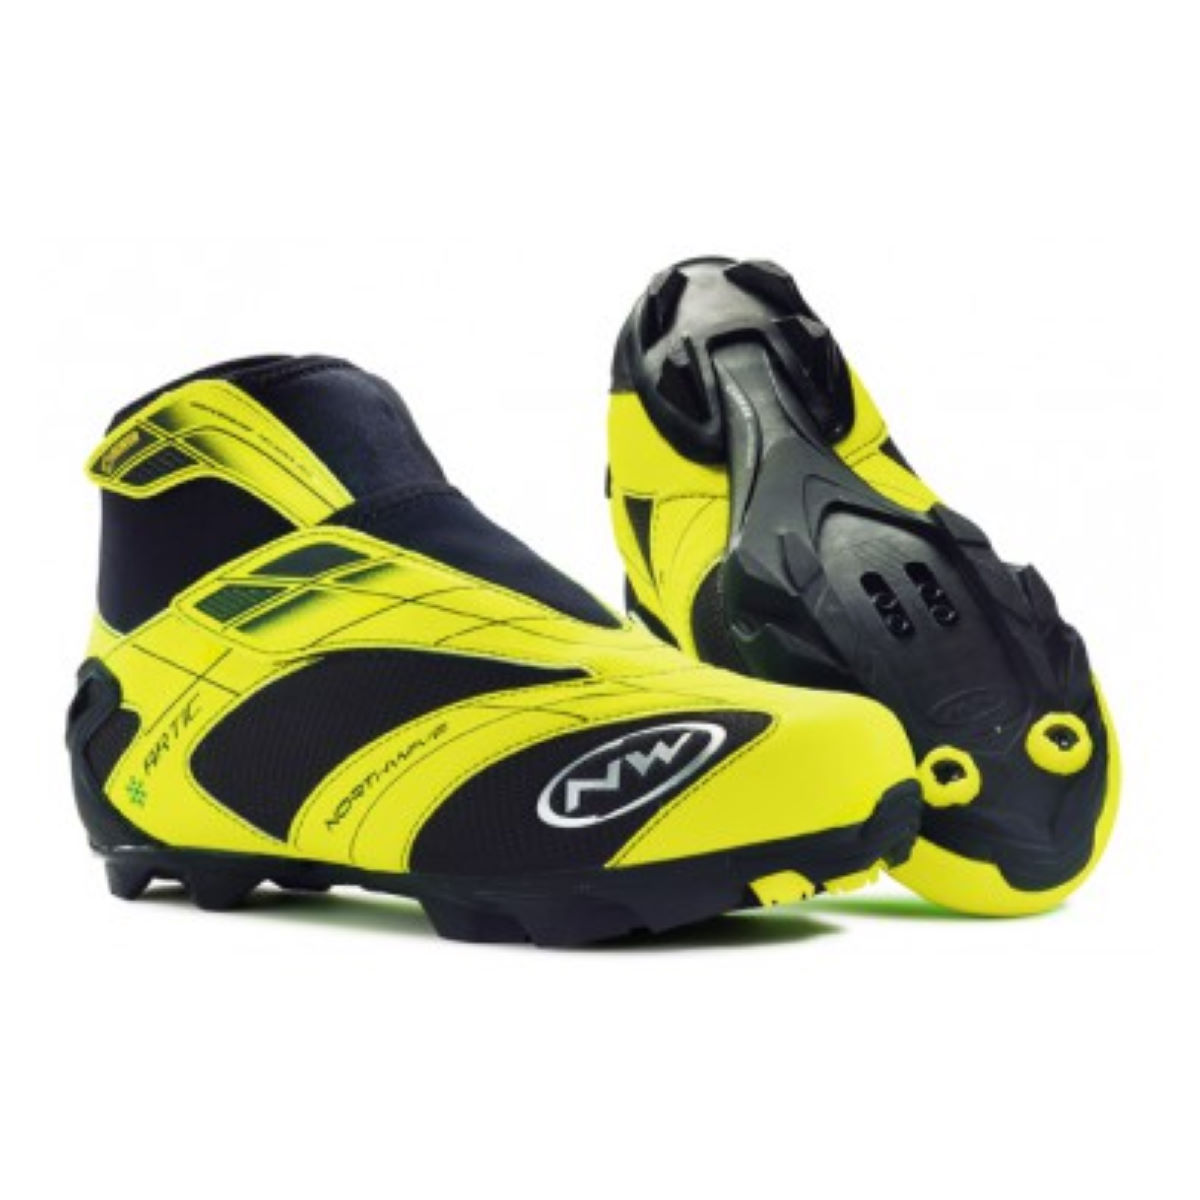 Northwave Fahrenheit GTX (Gore-Tex) Winter Road Shoes